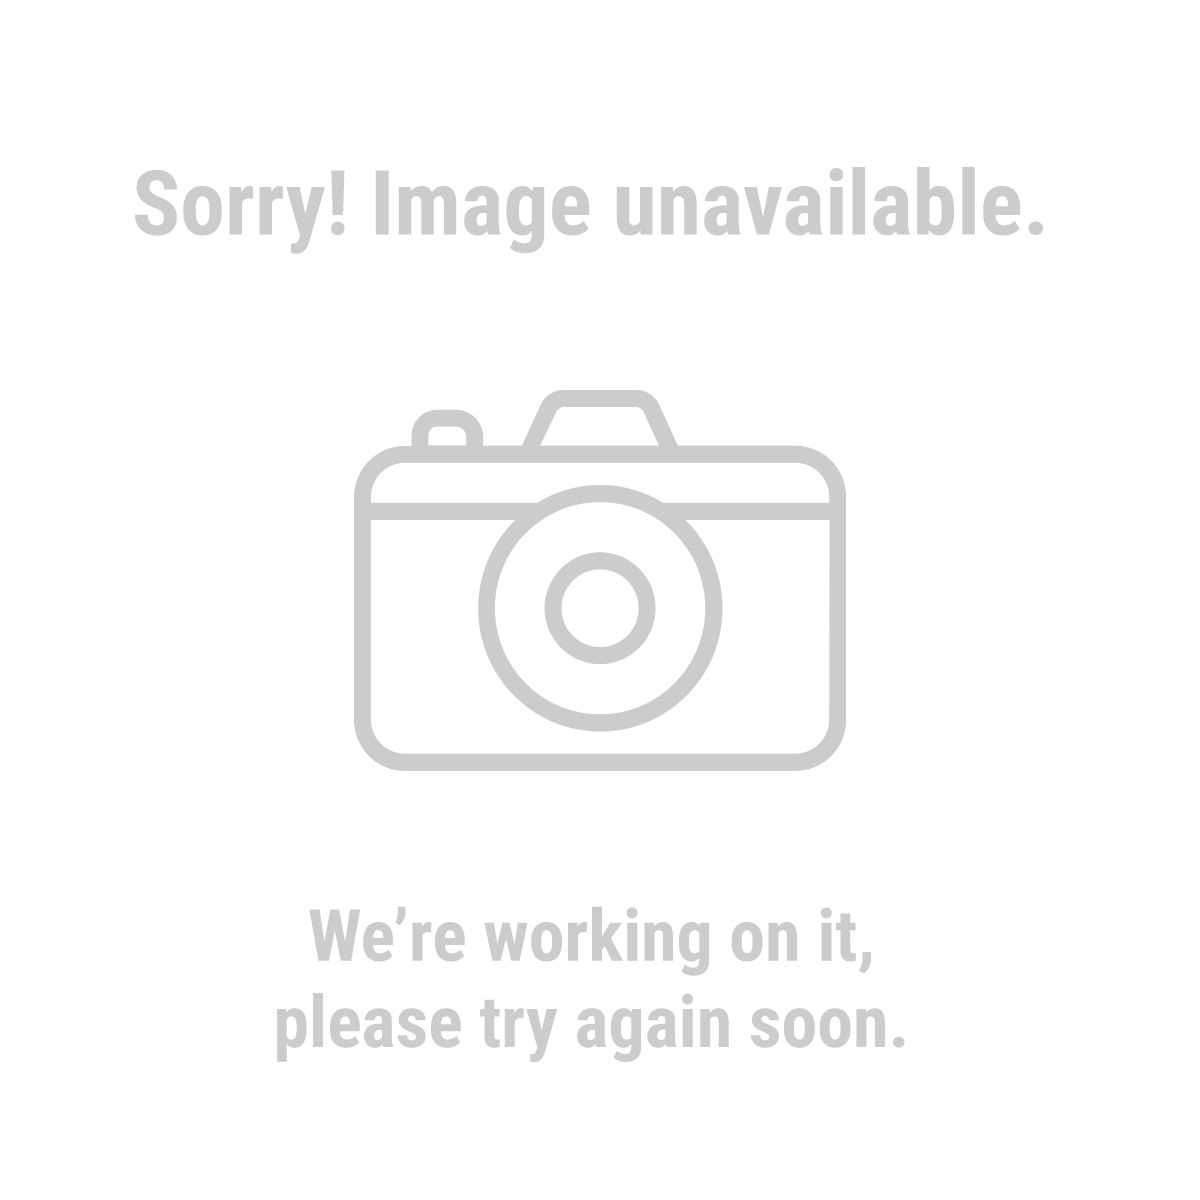 Central Pneumatic® 60637 Pancake Air Compressor, Oilless 1/3 Horsepower, 3 Gallon, 100 PSI